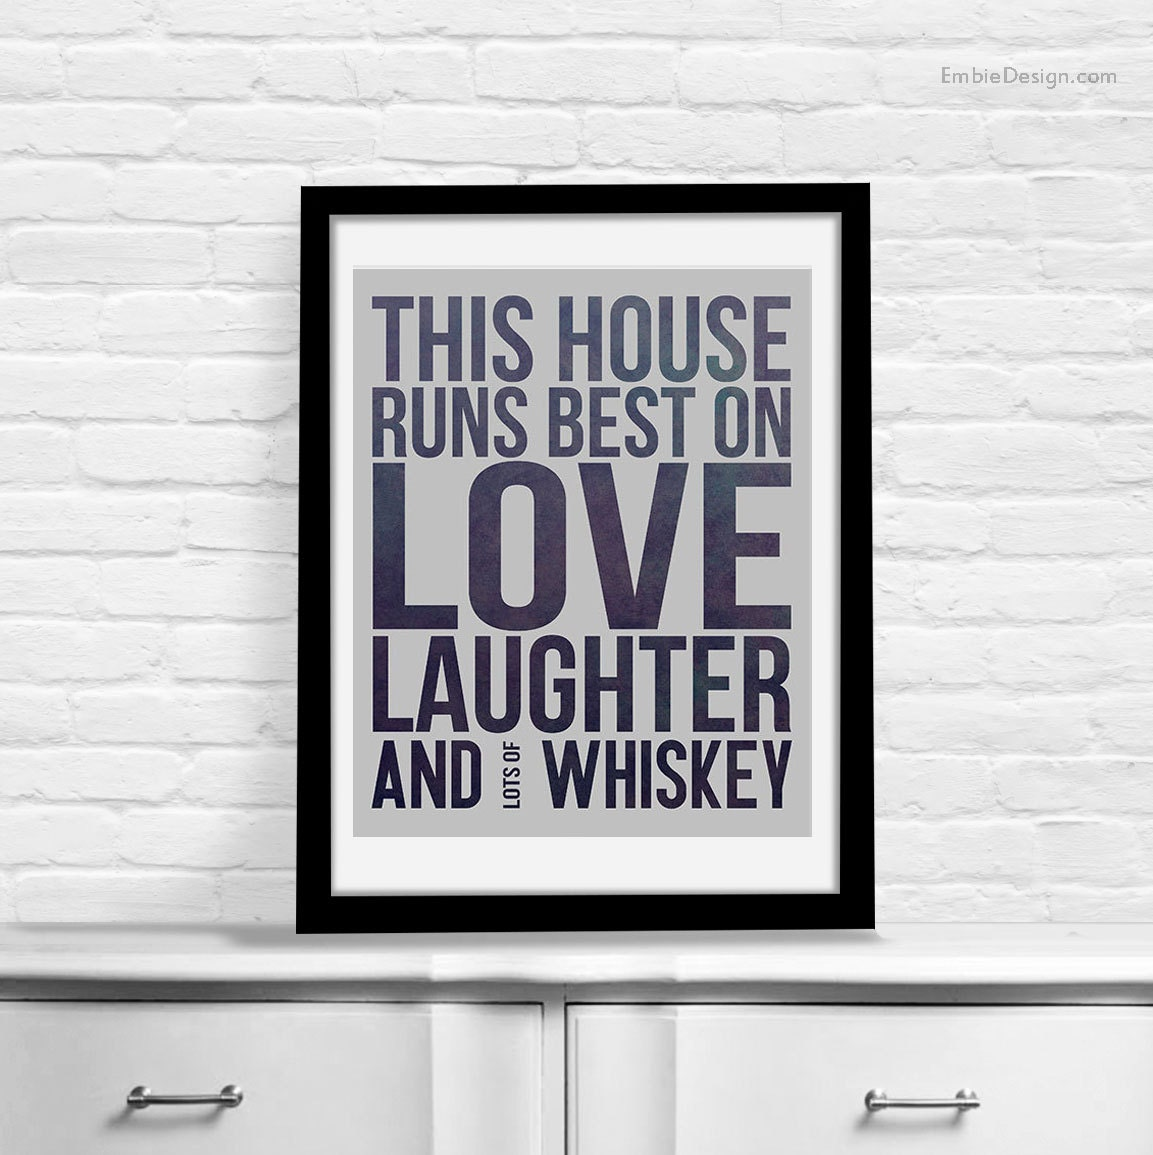 I Just Love This House: This House Runs Best On Love Laughter And Whiskey Print